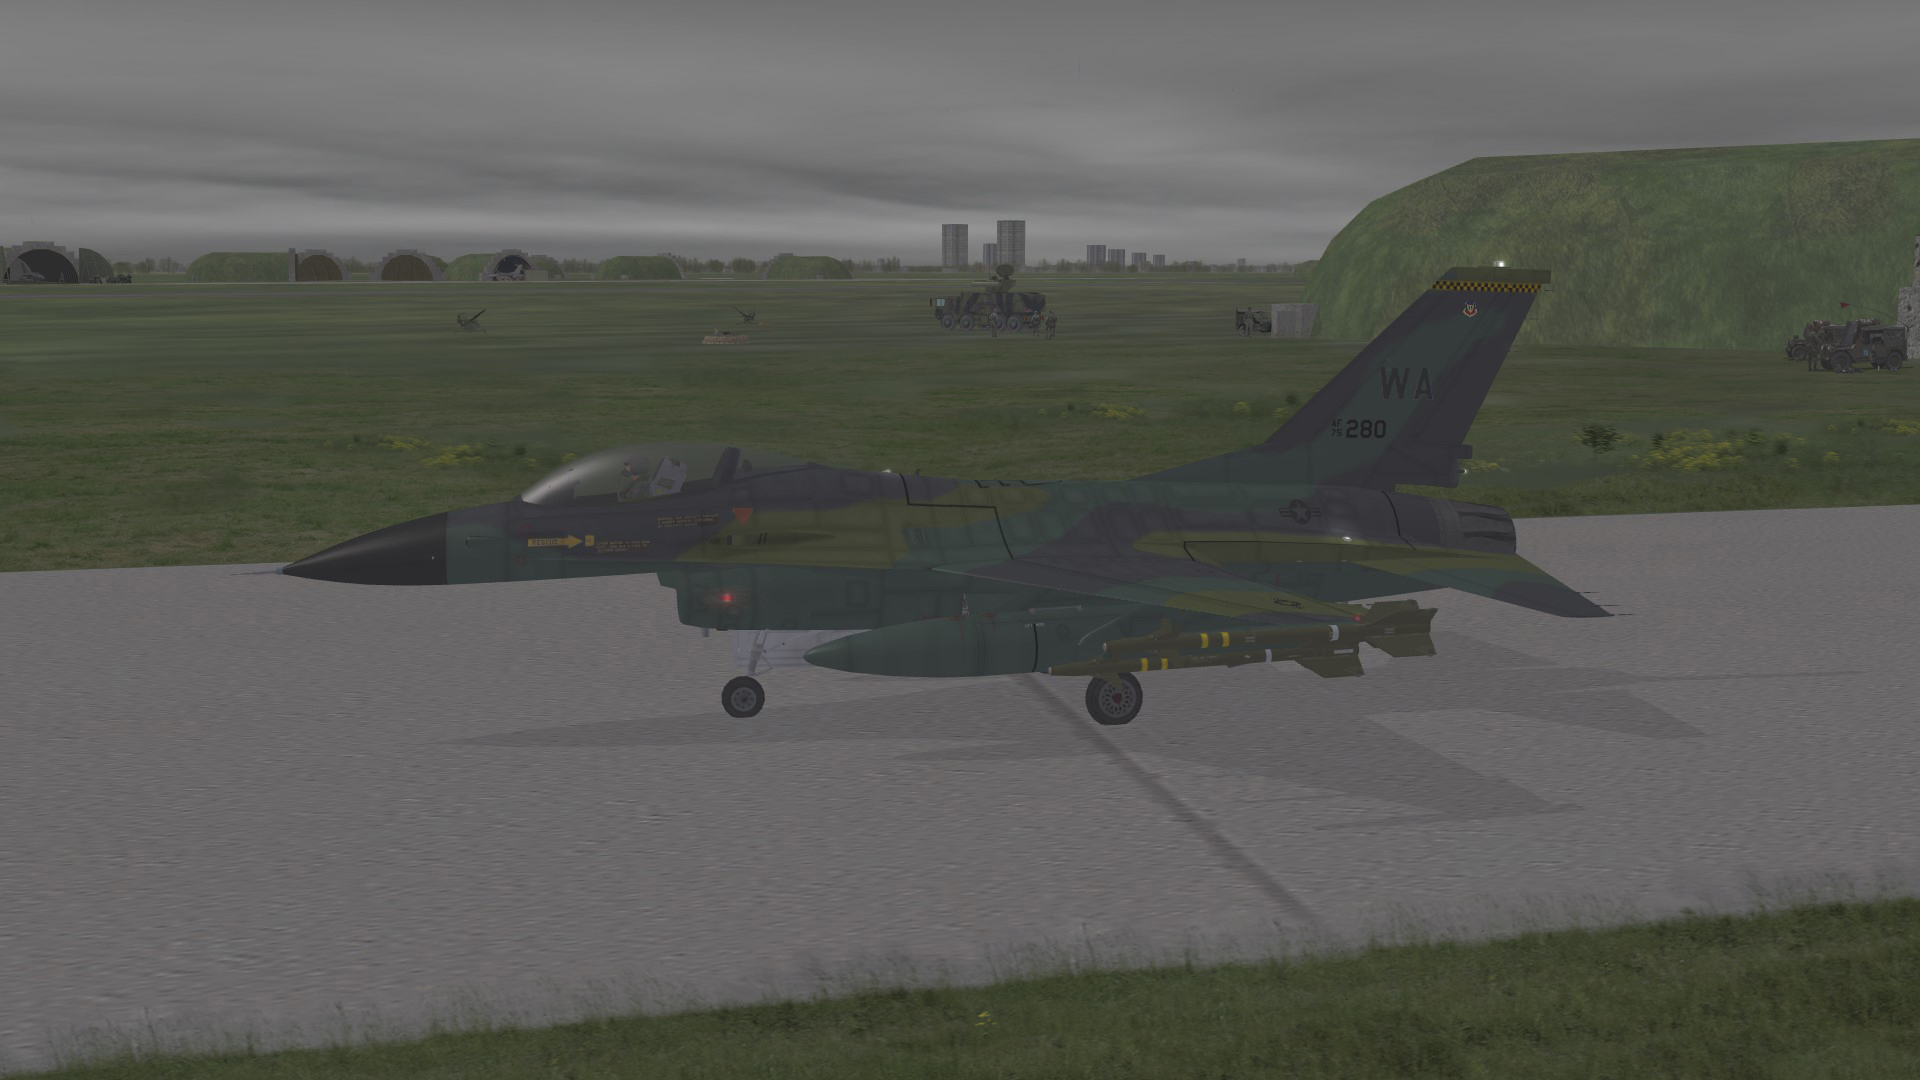 1986 A16 Taxiing on home base W.Germany